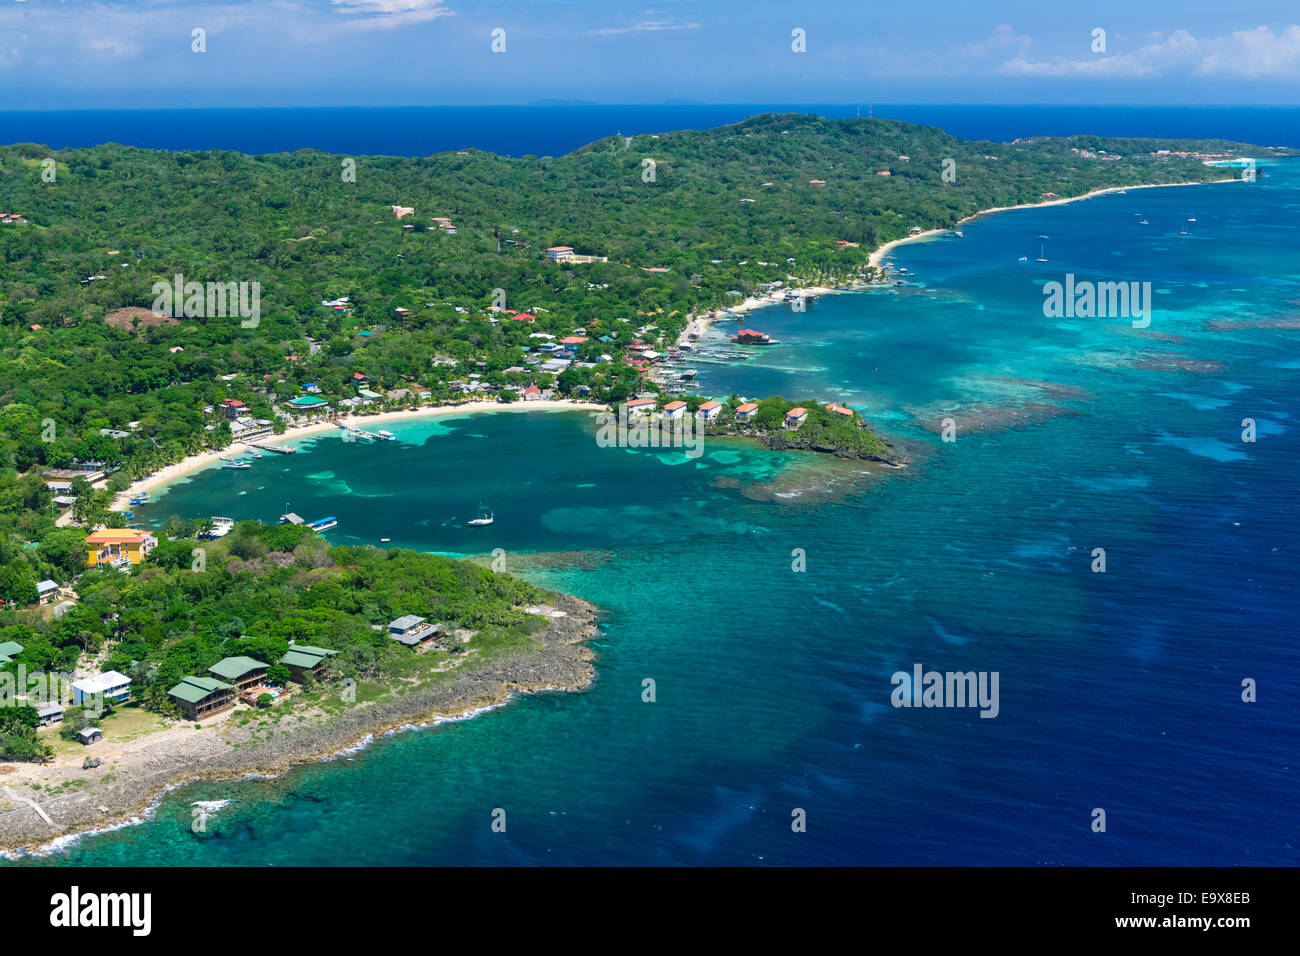 Aerial photo of Roatan's West End at Half Moon Bay - Stock Image